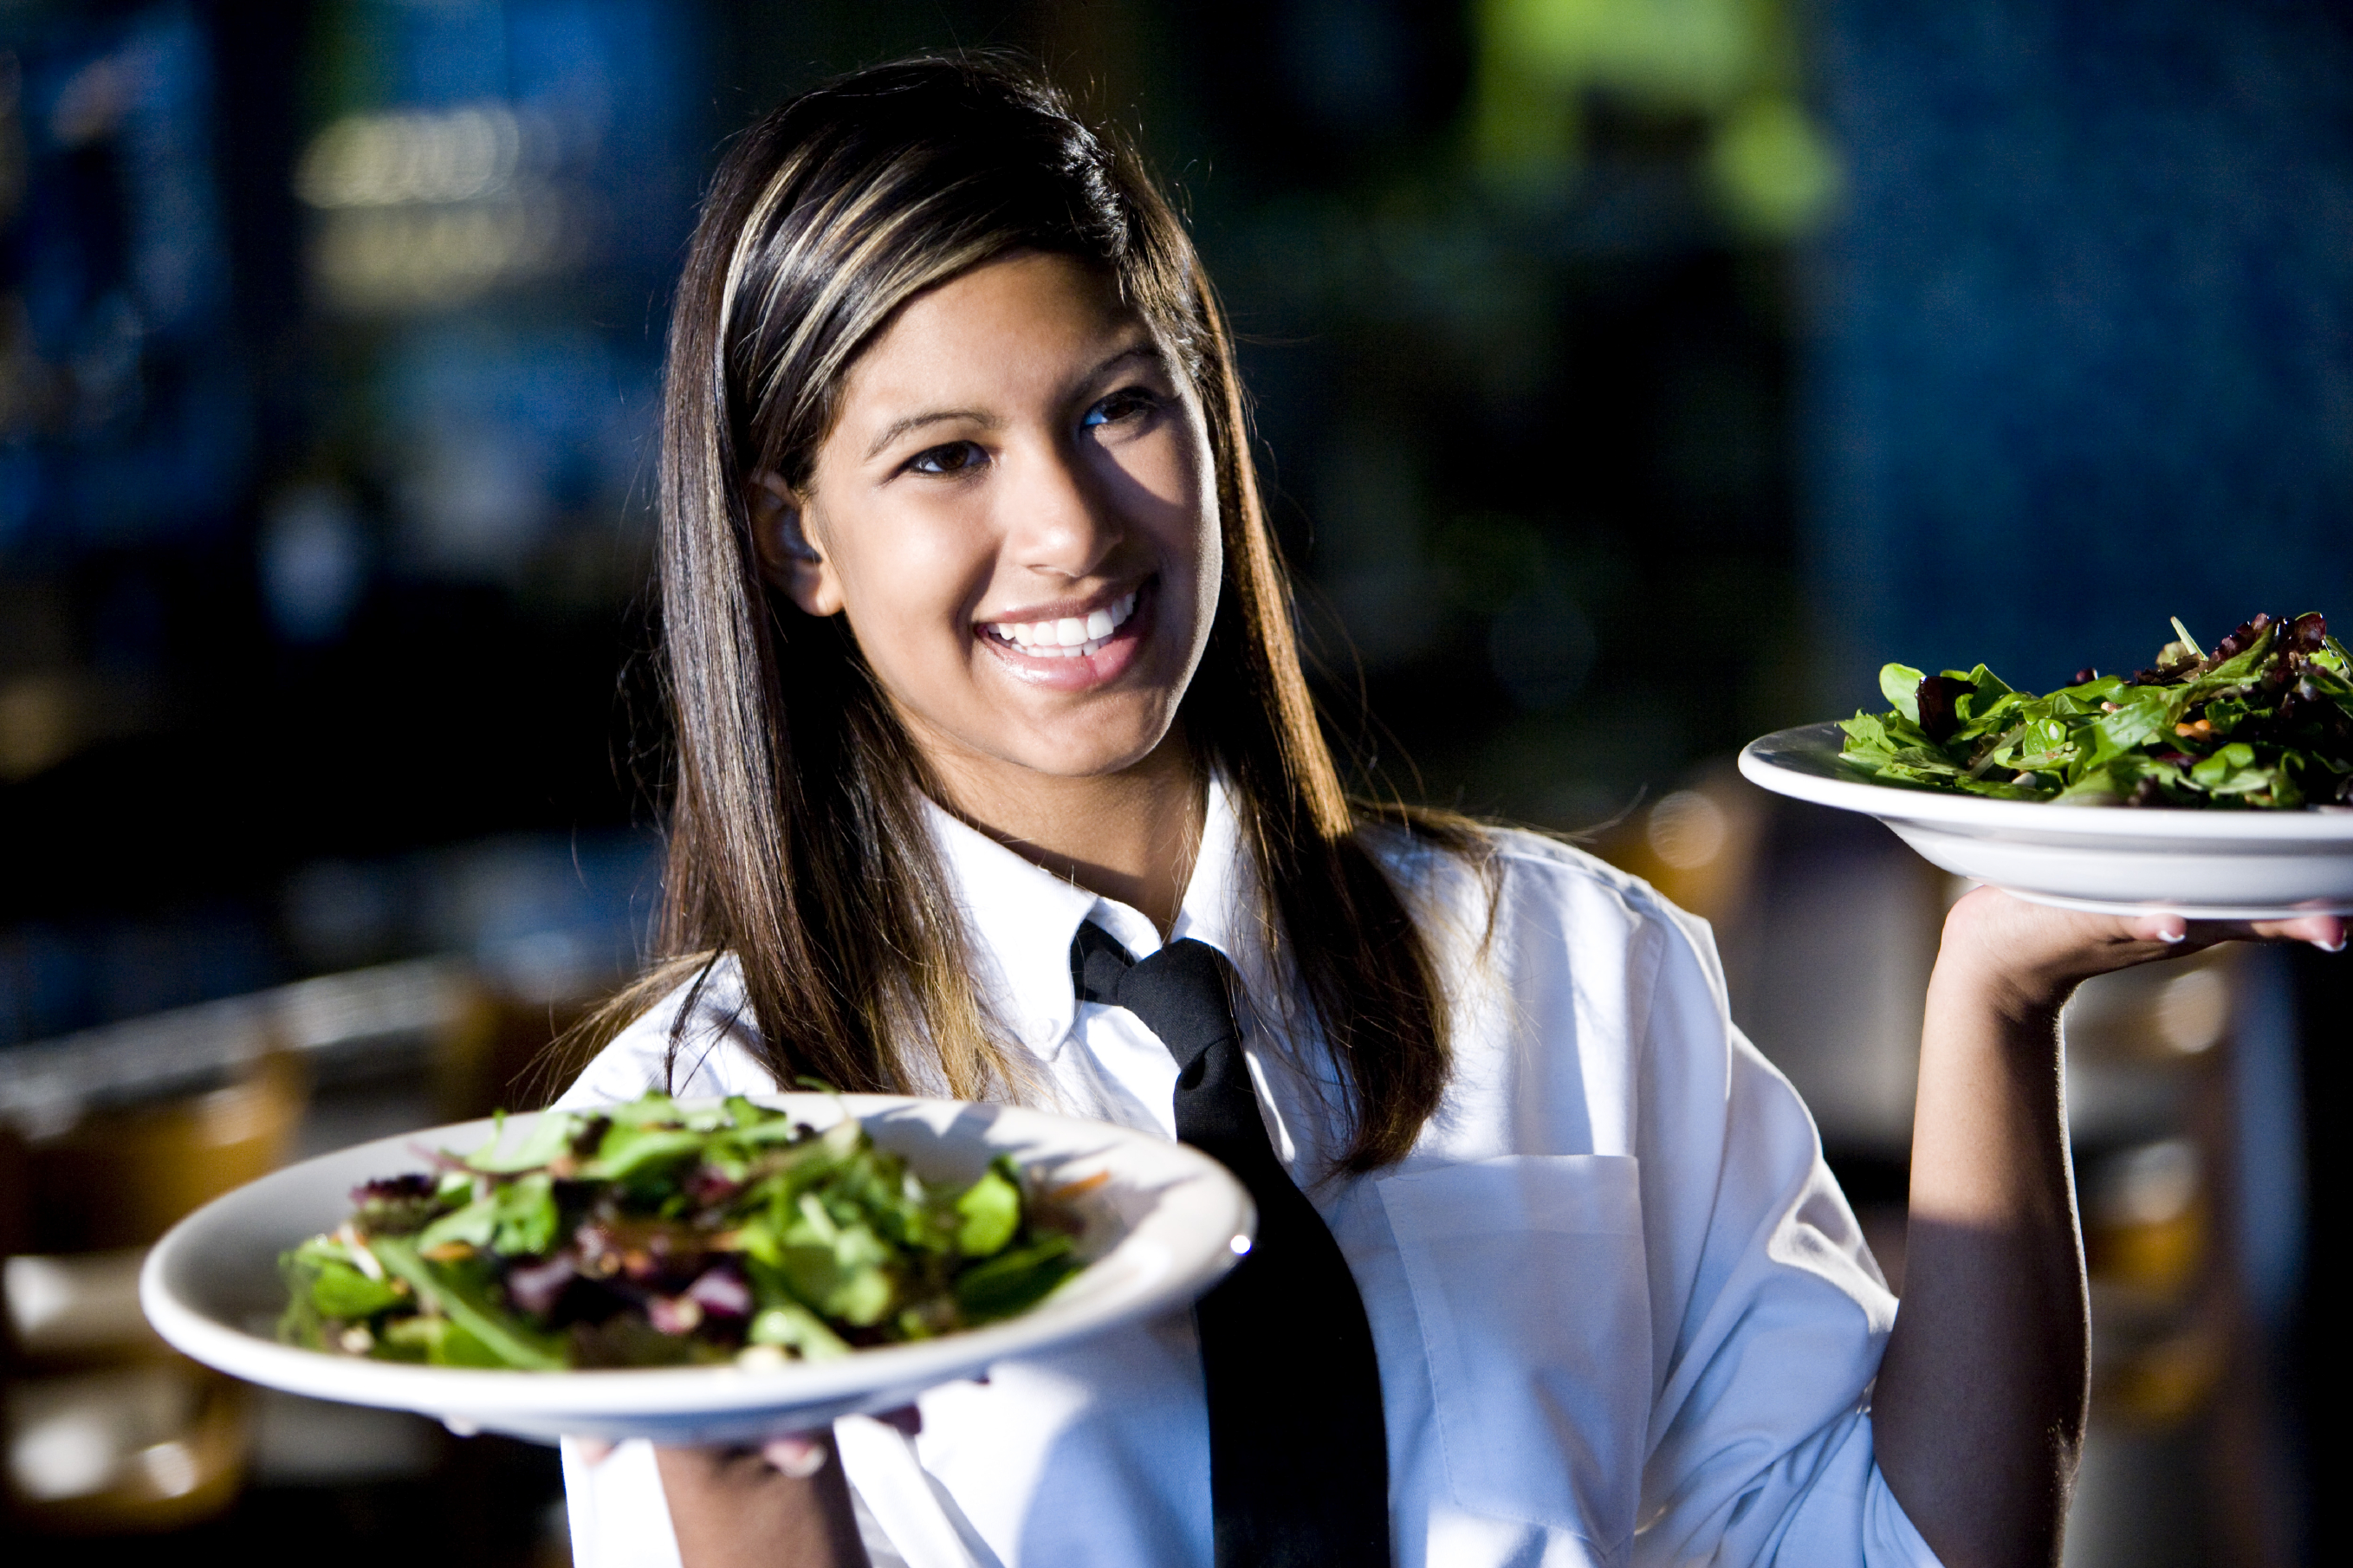 5 Restaurant Software Power Tools To Improve Customer Service